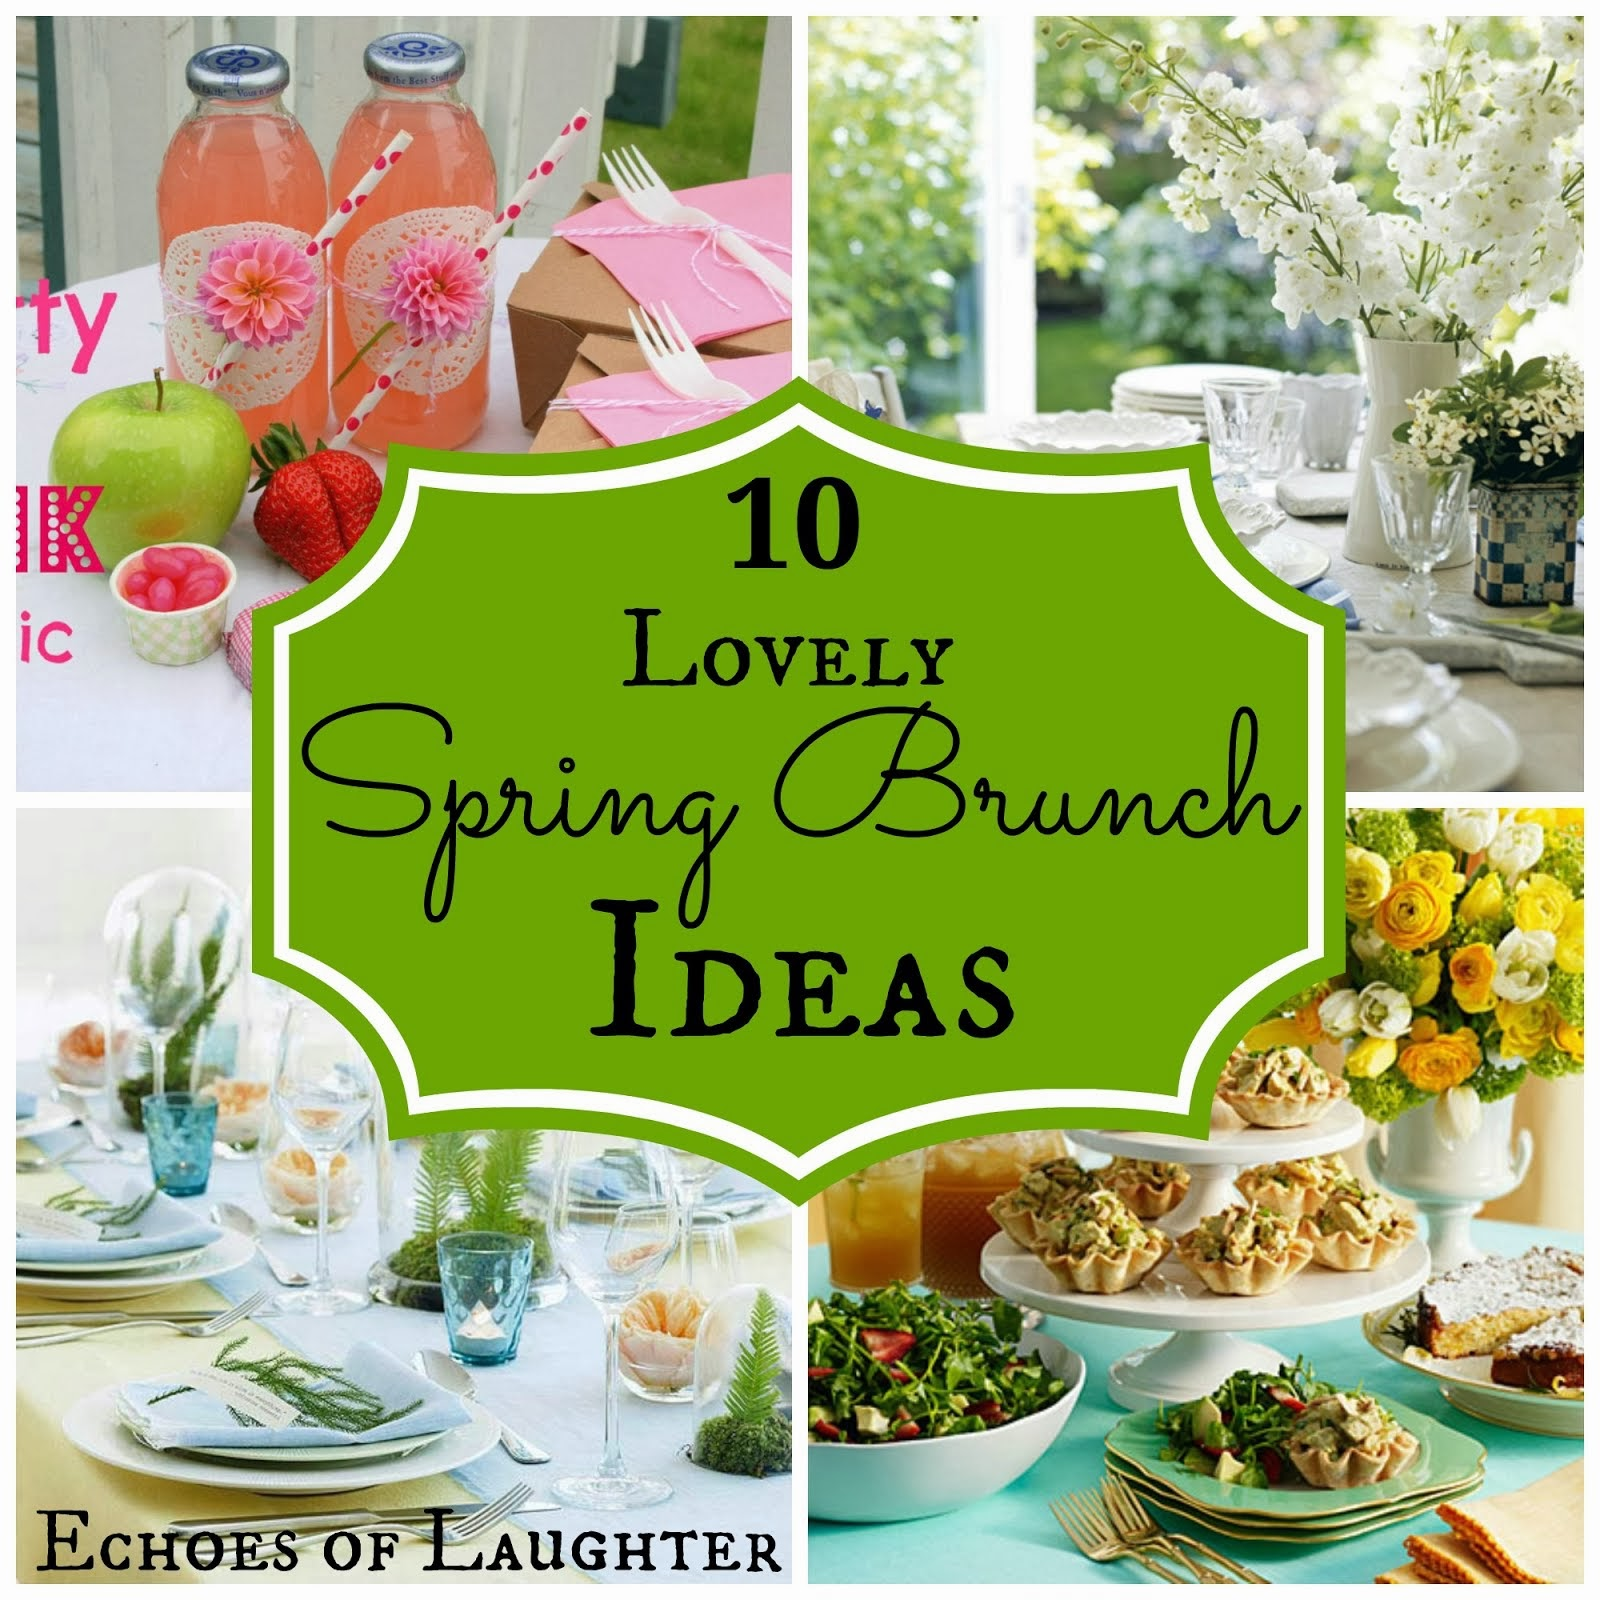 10 Lovely Spring Brunch Ideas